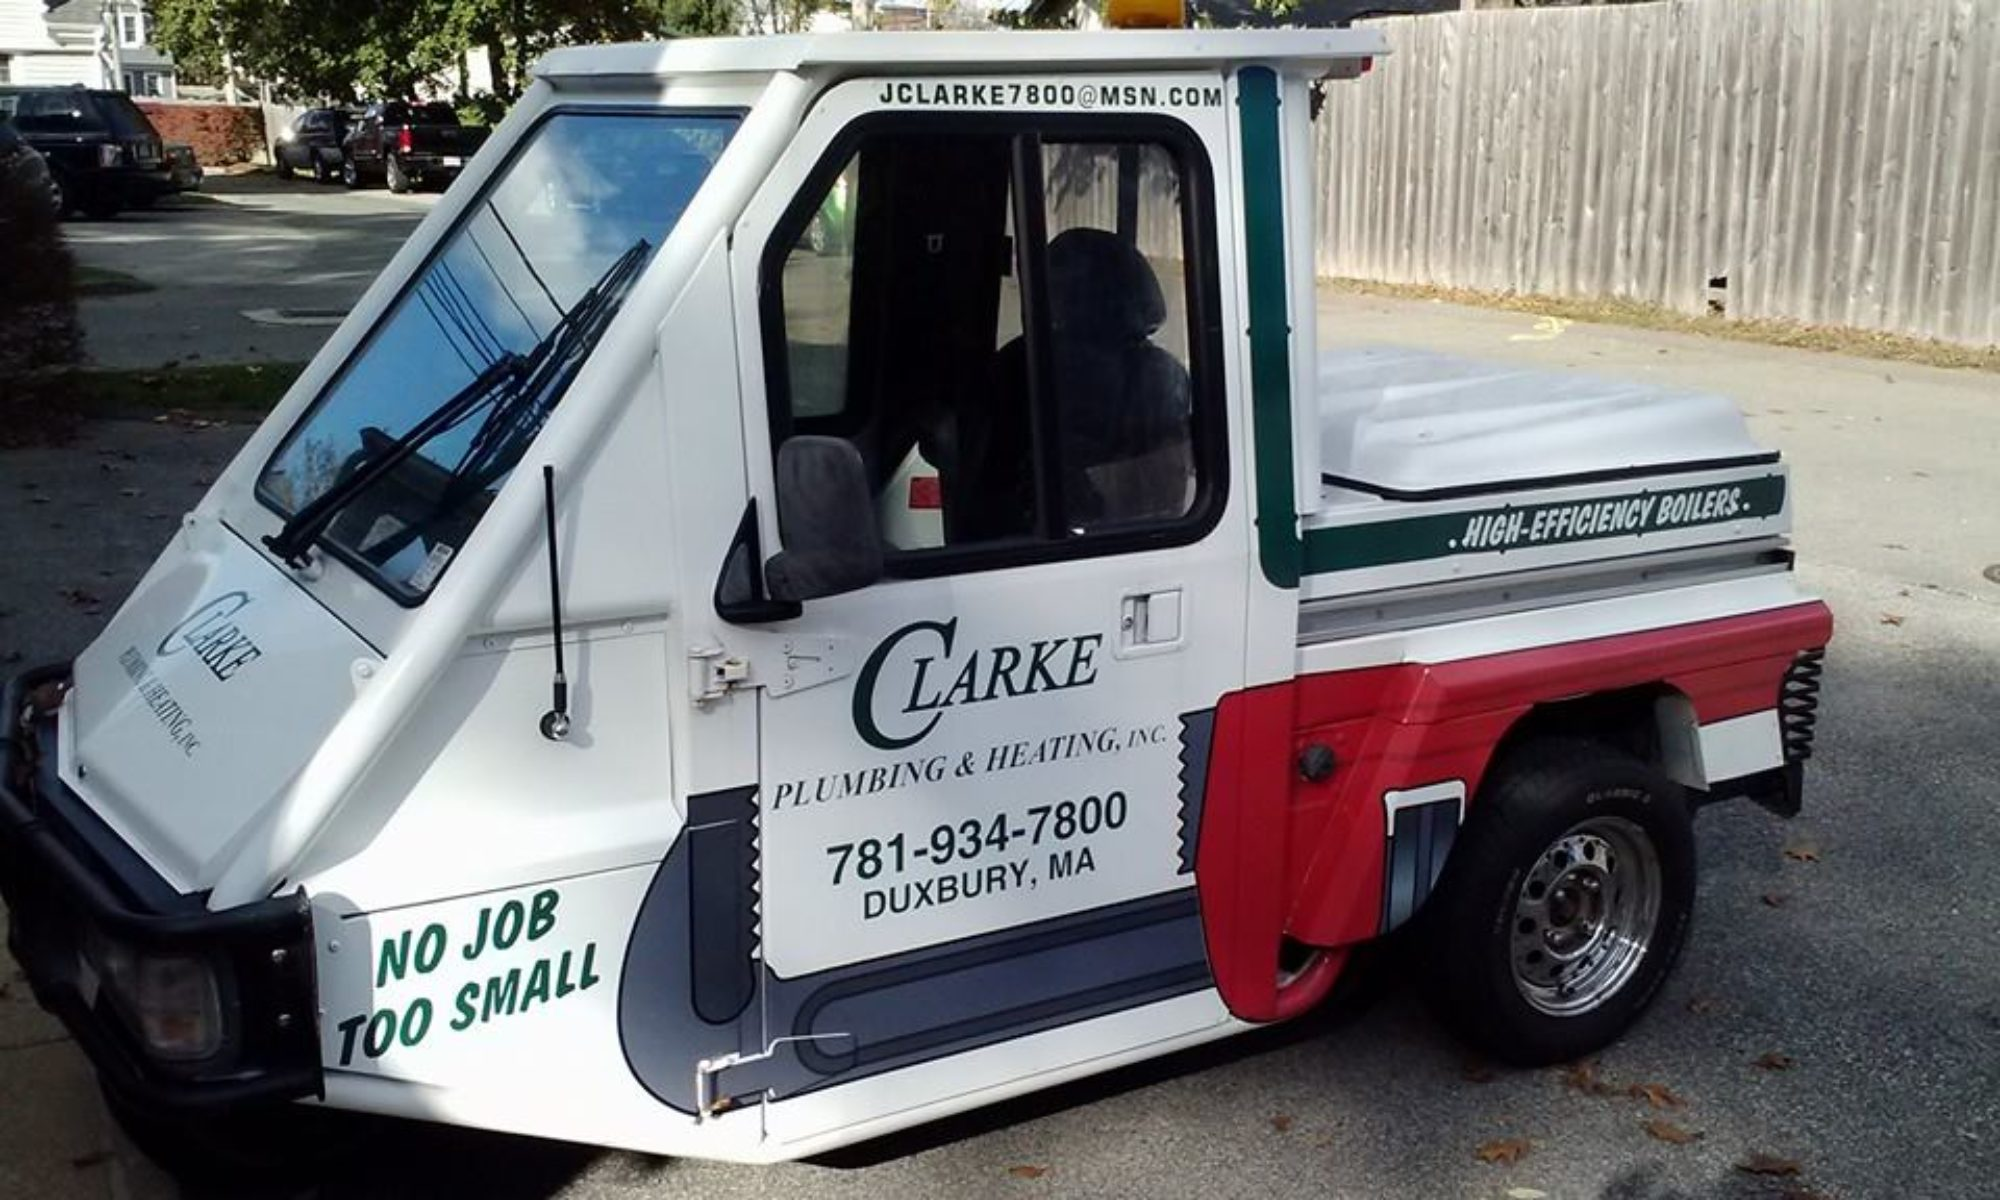 Jonathan Clarke Plumbing and Heating - Duxbury, MAssachusetts